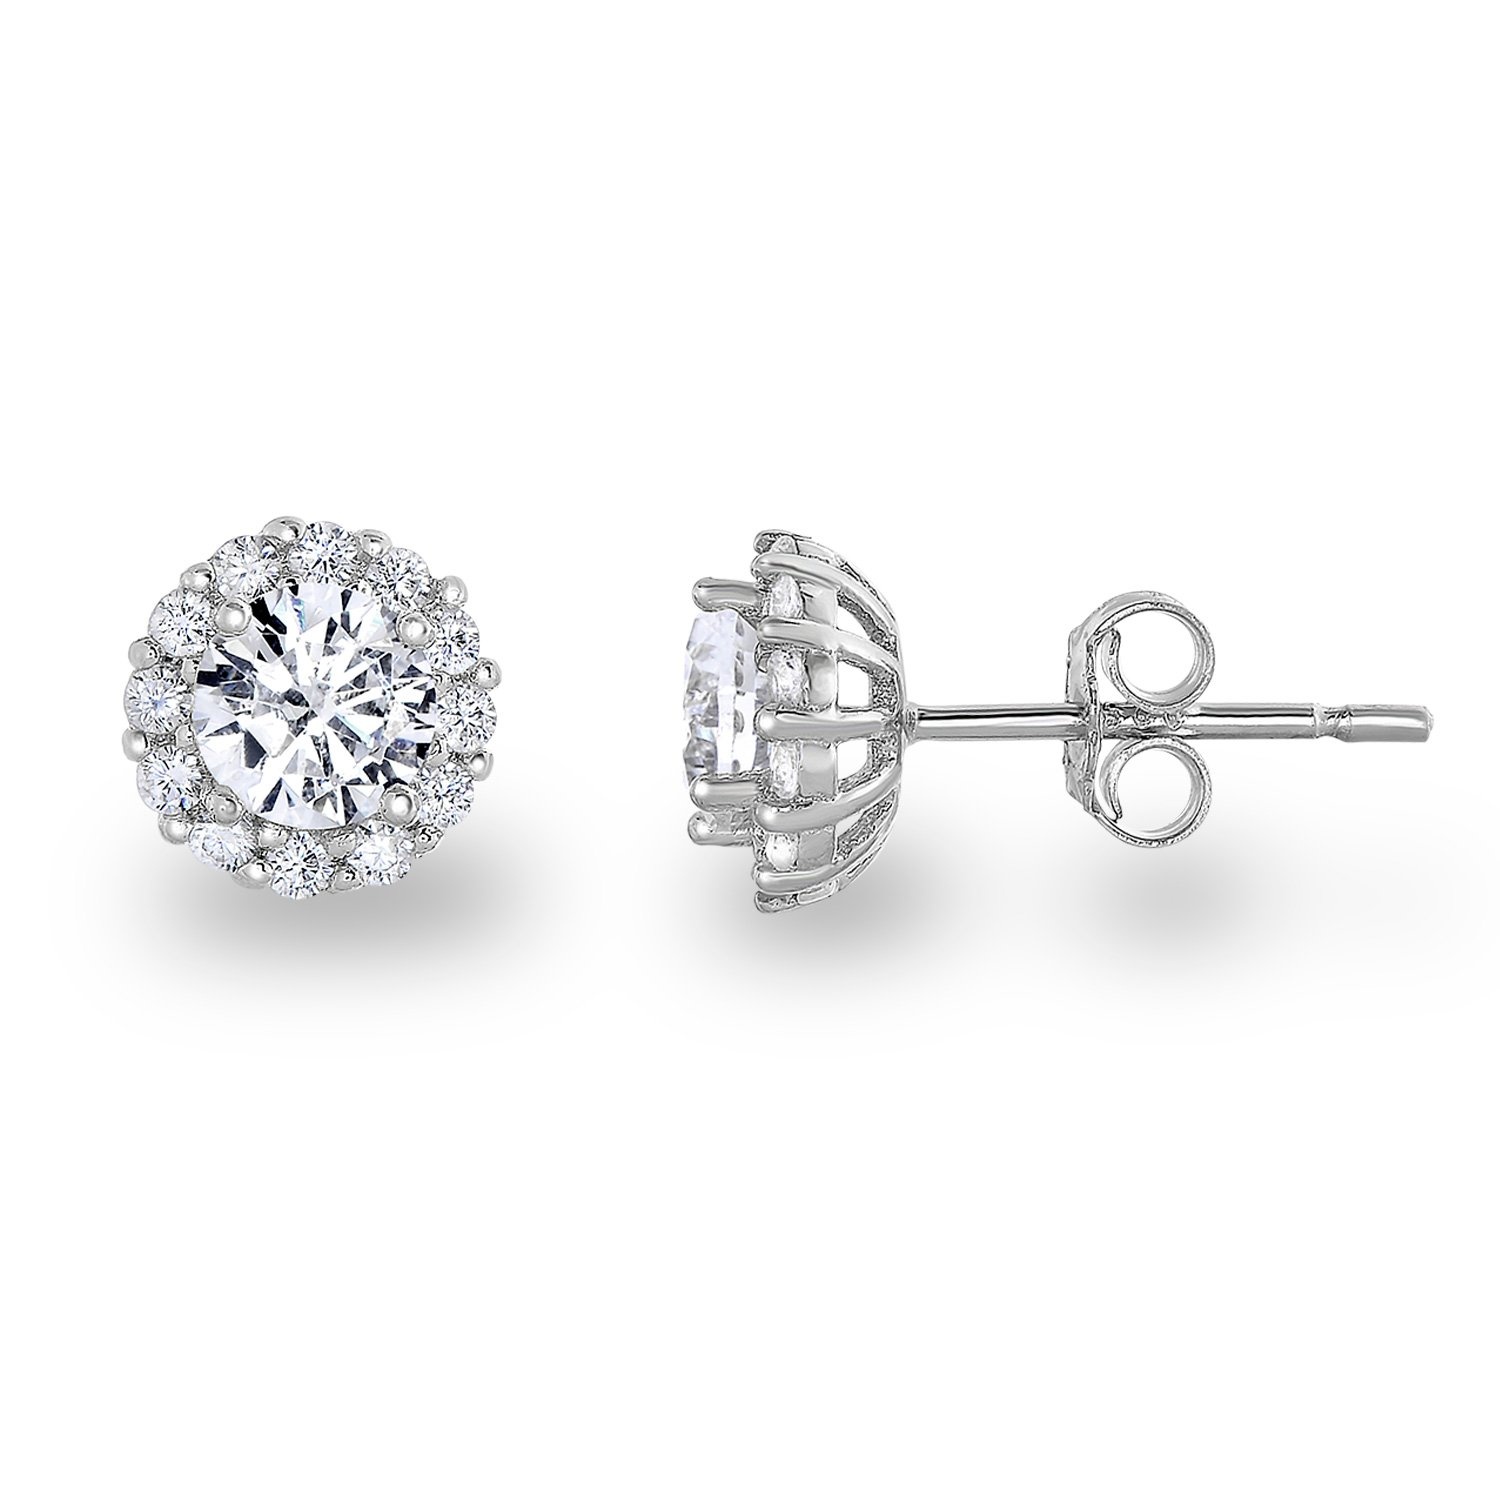 Rhodium Plated Sterling Silver Cubic Zirconia Classic Halo Stud Earrings,(Center Stone:5mm)